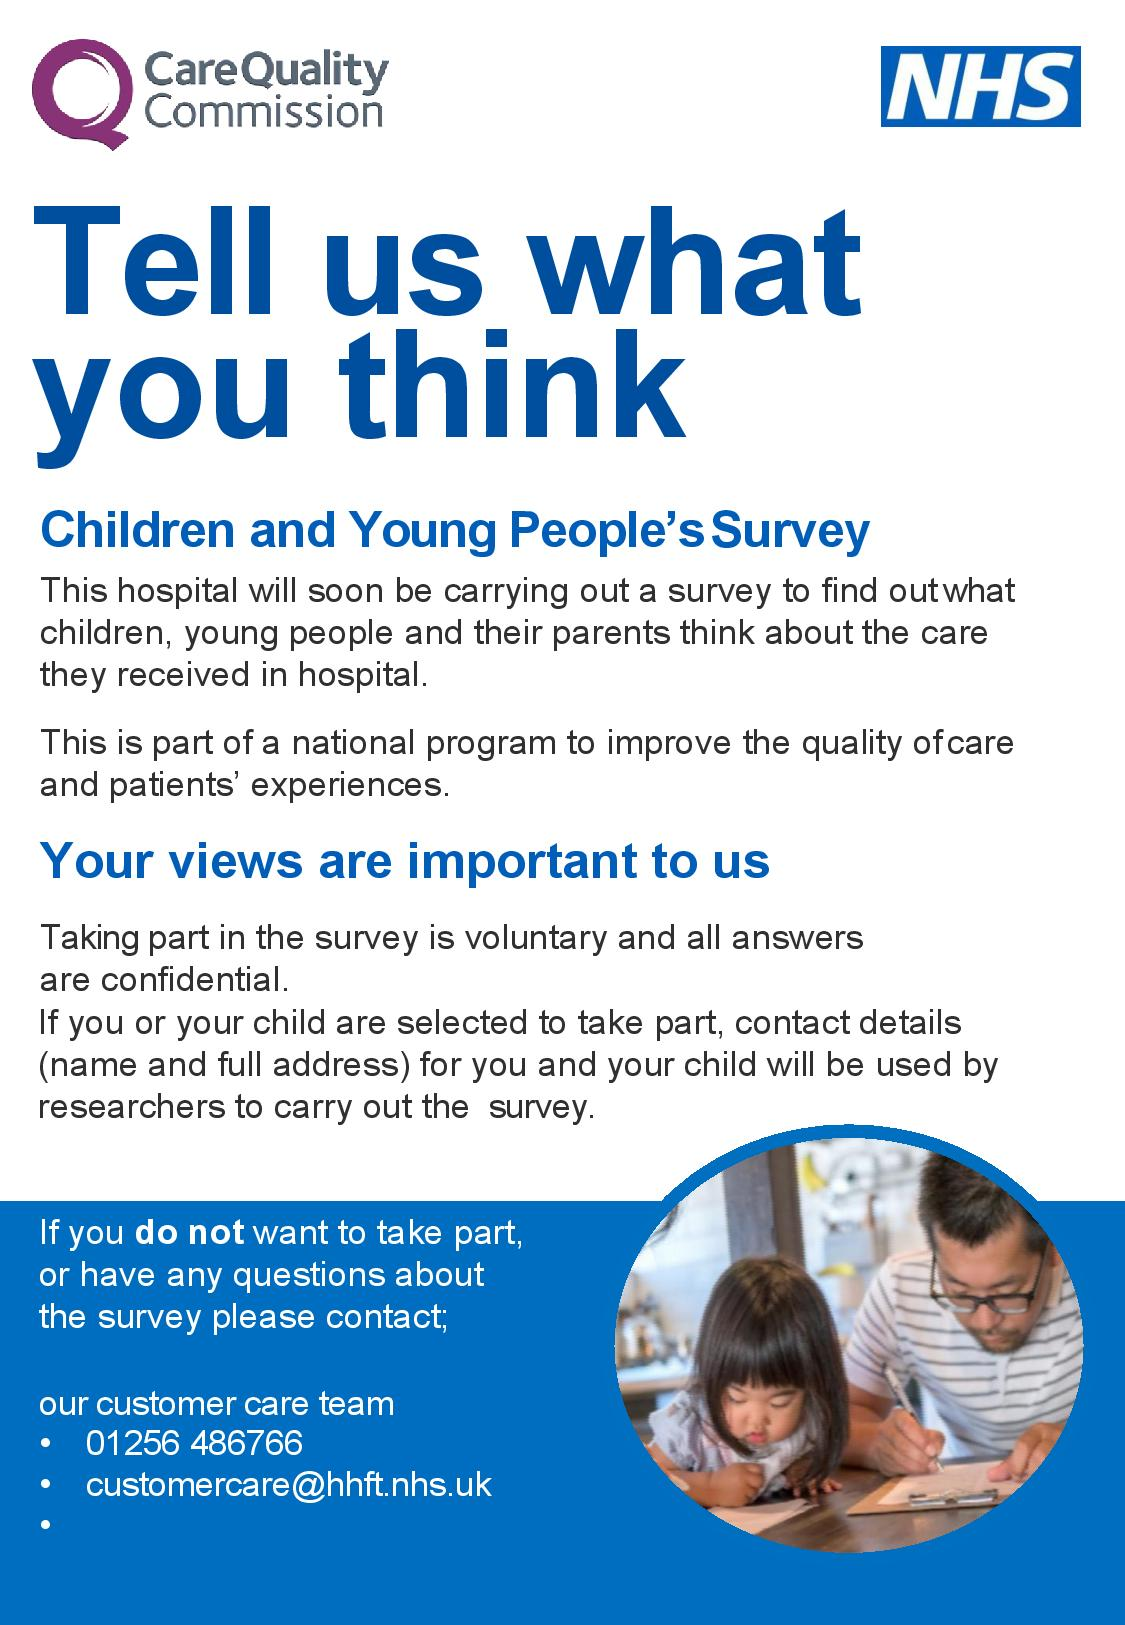 childrens survey 2020-page-001.jpg